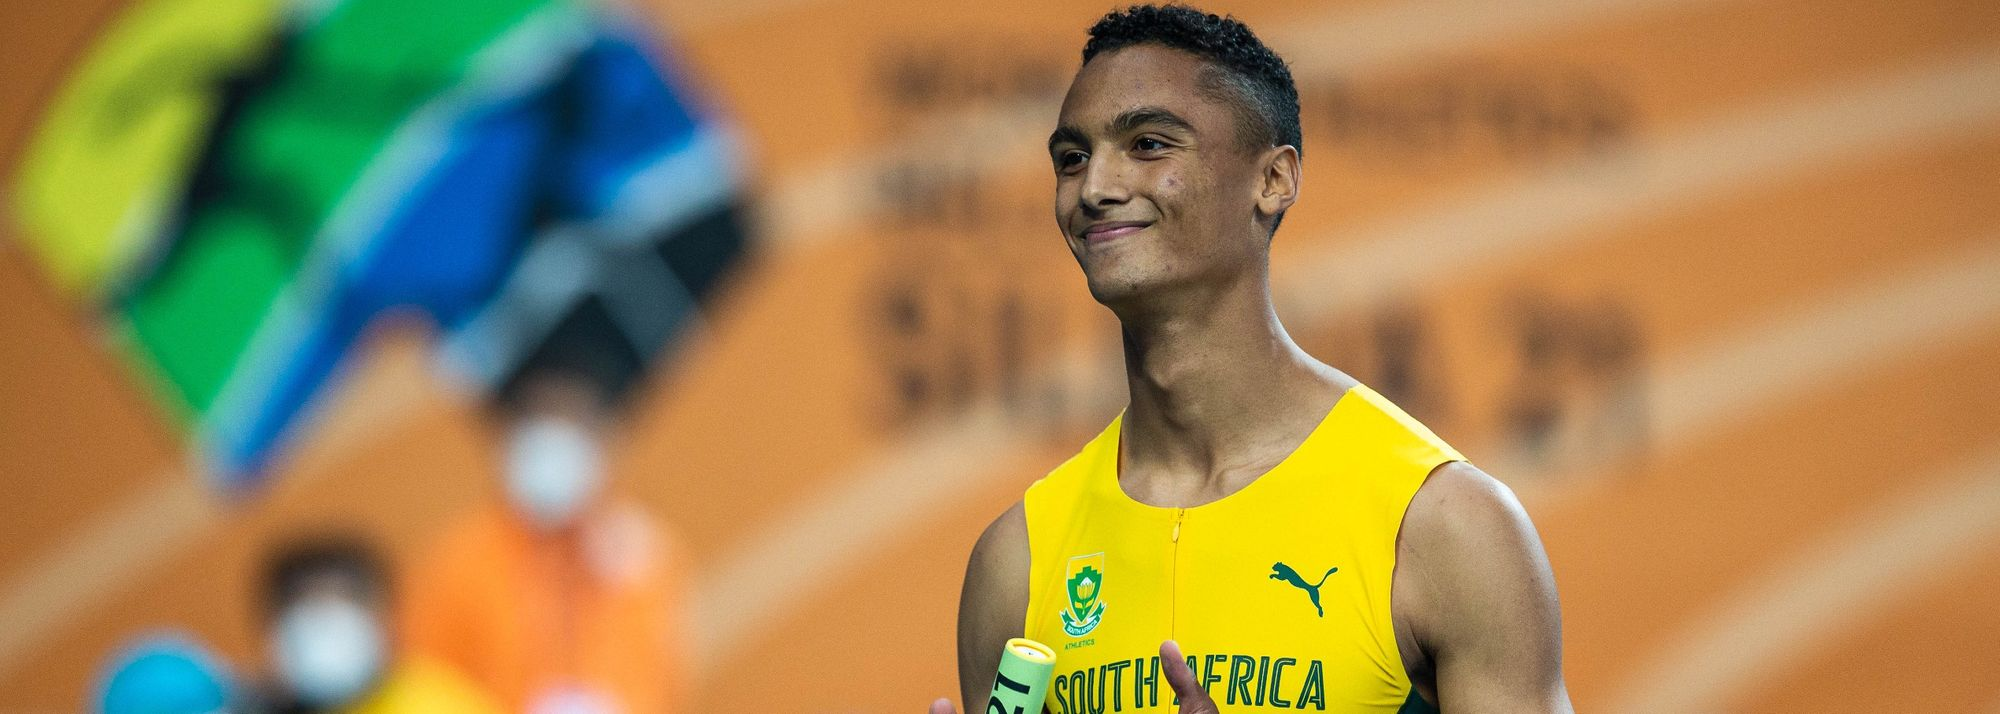 With 100 days to go until the World Athletics U20 Championships Nairobi 21, Lythe Pillay is one of his country's brightest prospects for gold.